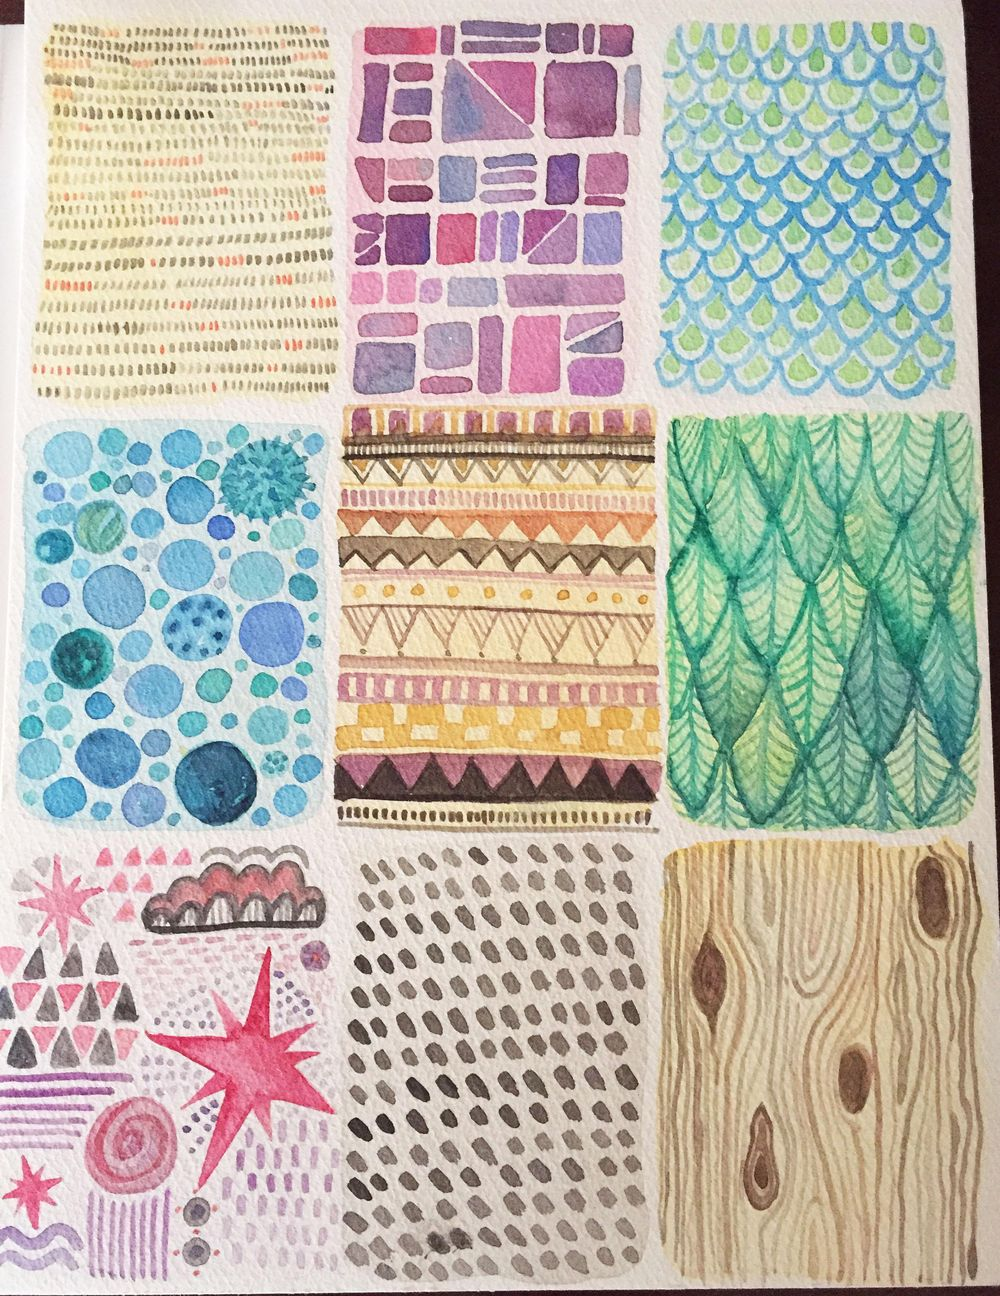 Watercolor patterns - image 2 - student project